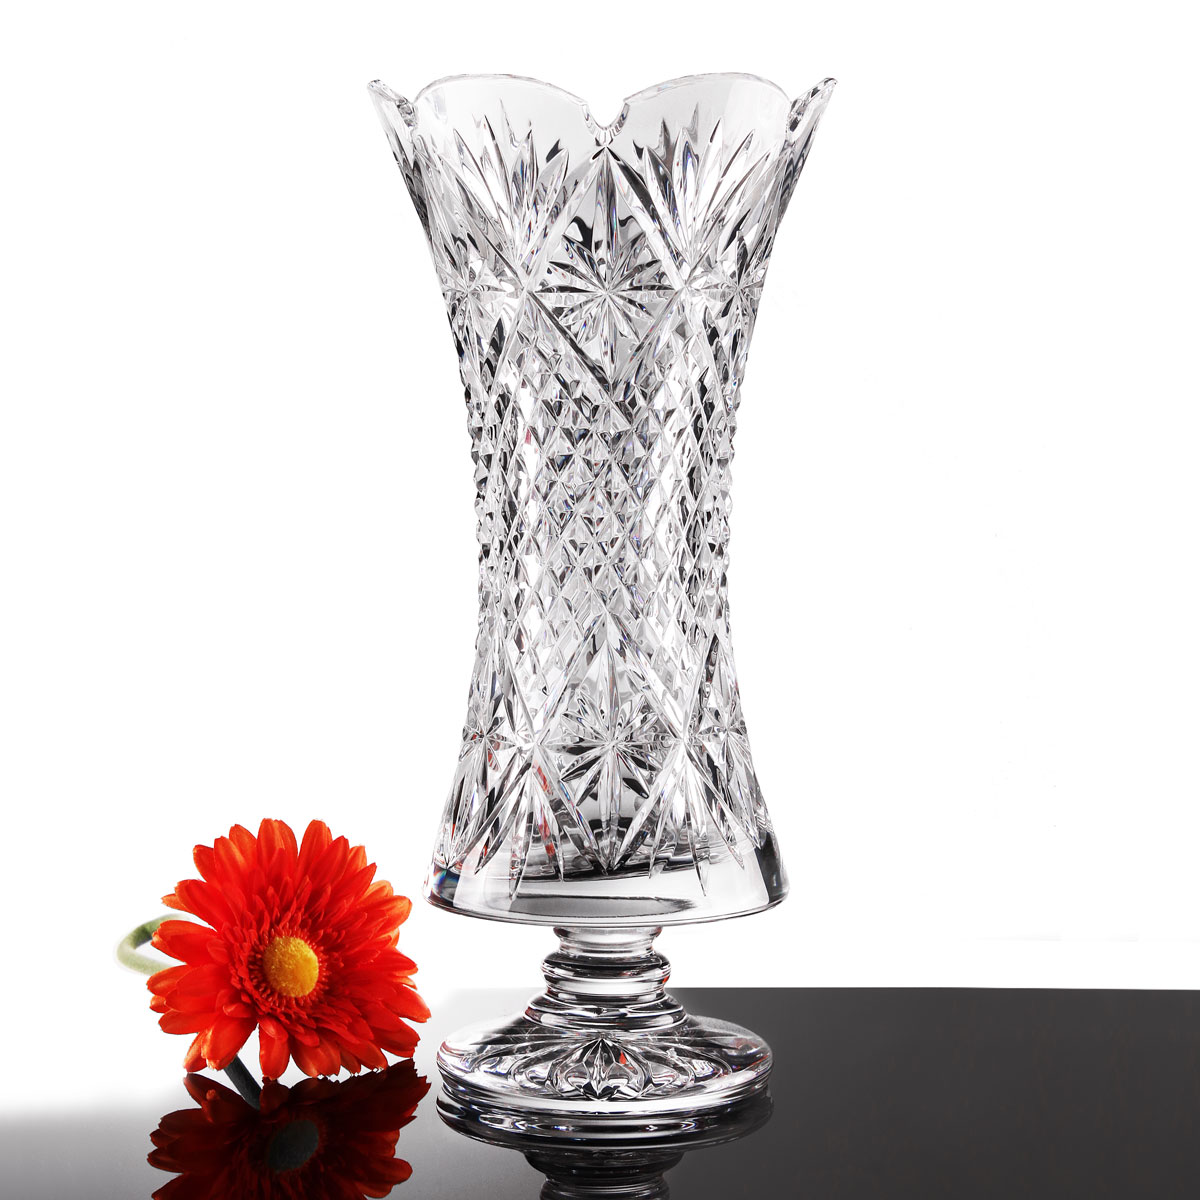 Cashs Ireland, Art Collection Erinn Crystal Vase, Limited Edition